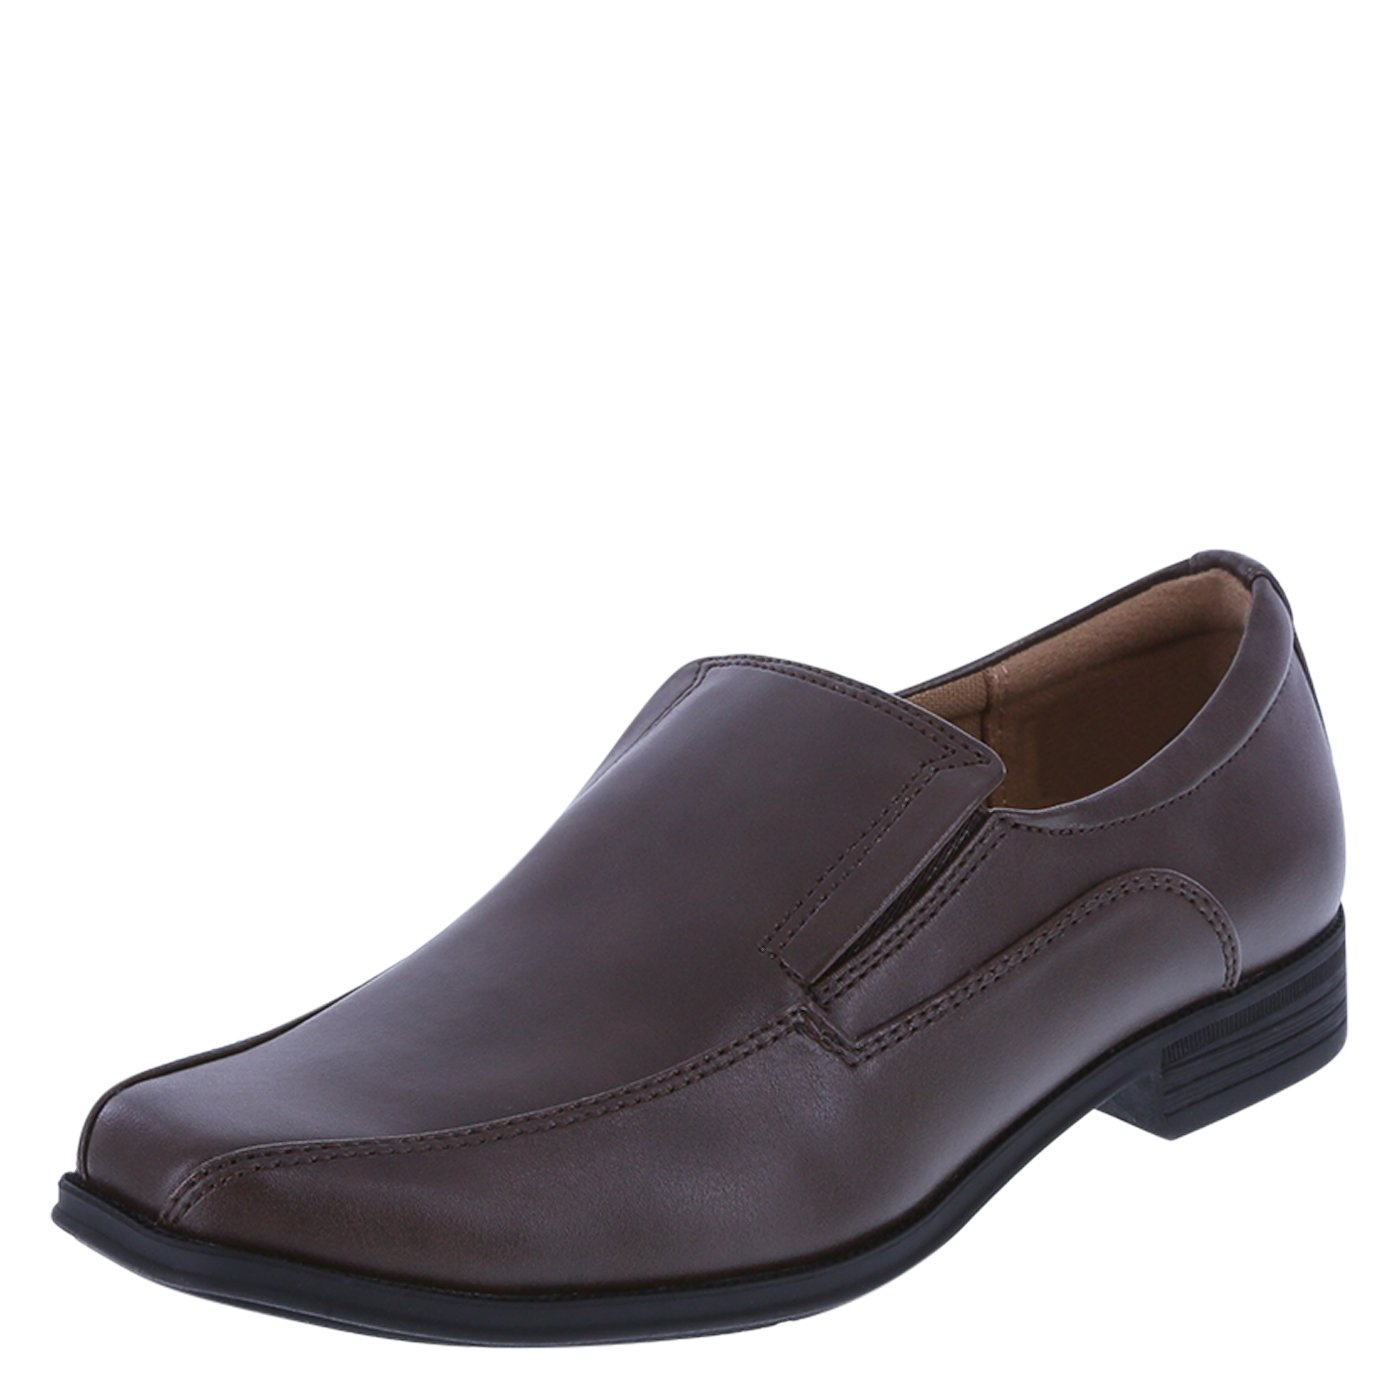 SmartFit Boys Grant Slip-On Dress Shoe 078463-Parent